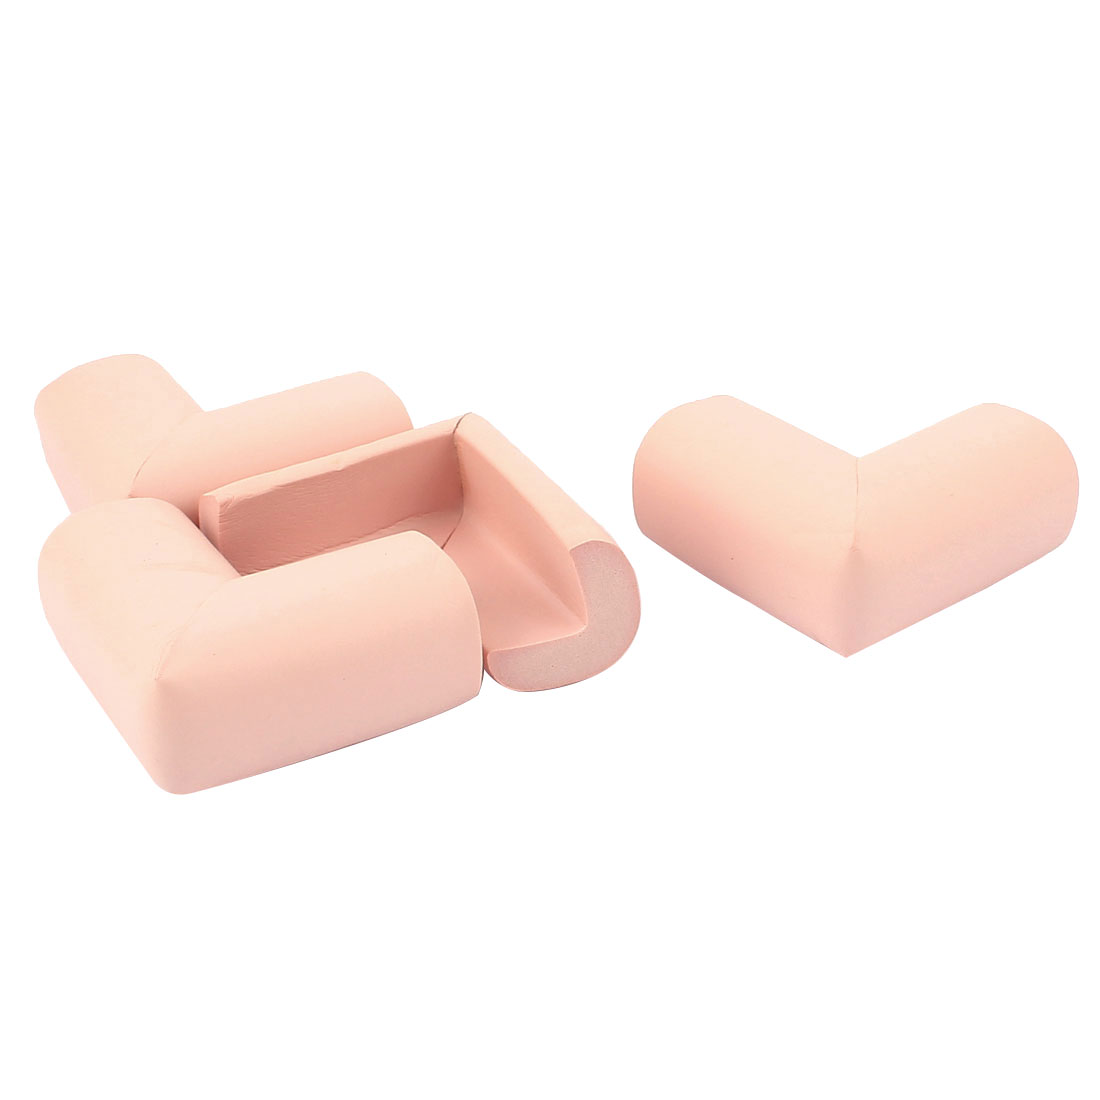 4Pcs Safety Furniture Desk Table Corner Eedge Foam Cushions Protectors Pink